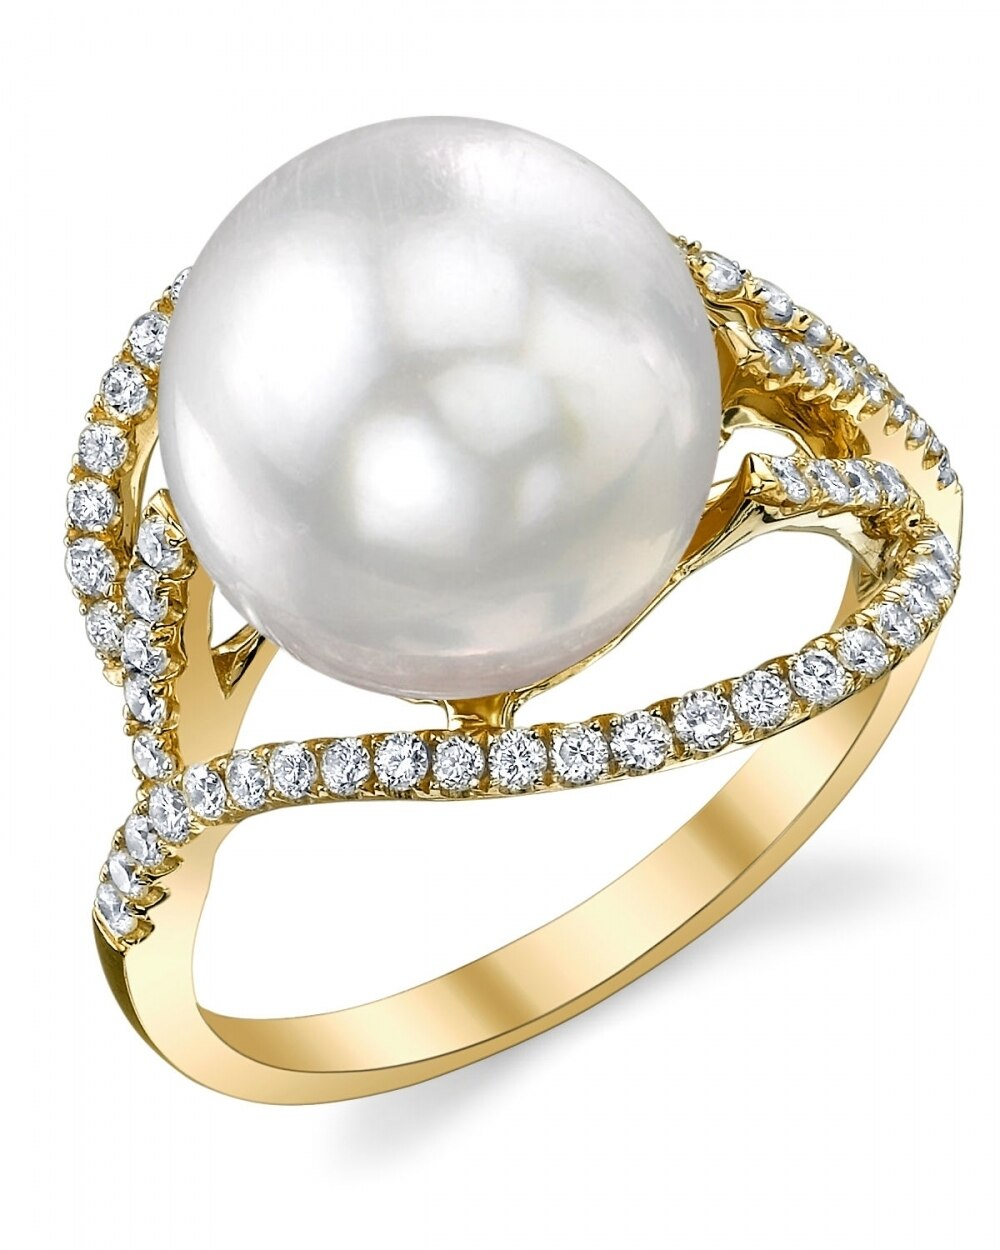 This exquisite ring features an 11.0-12.0mm White South Sea pearl, handpicked for its luminous luster